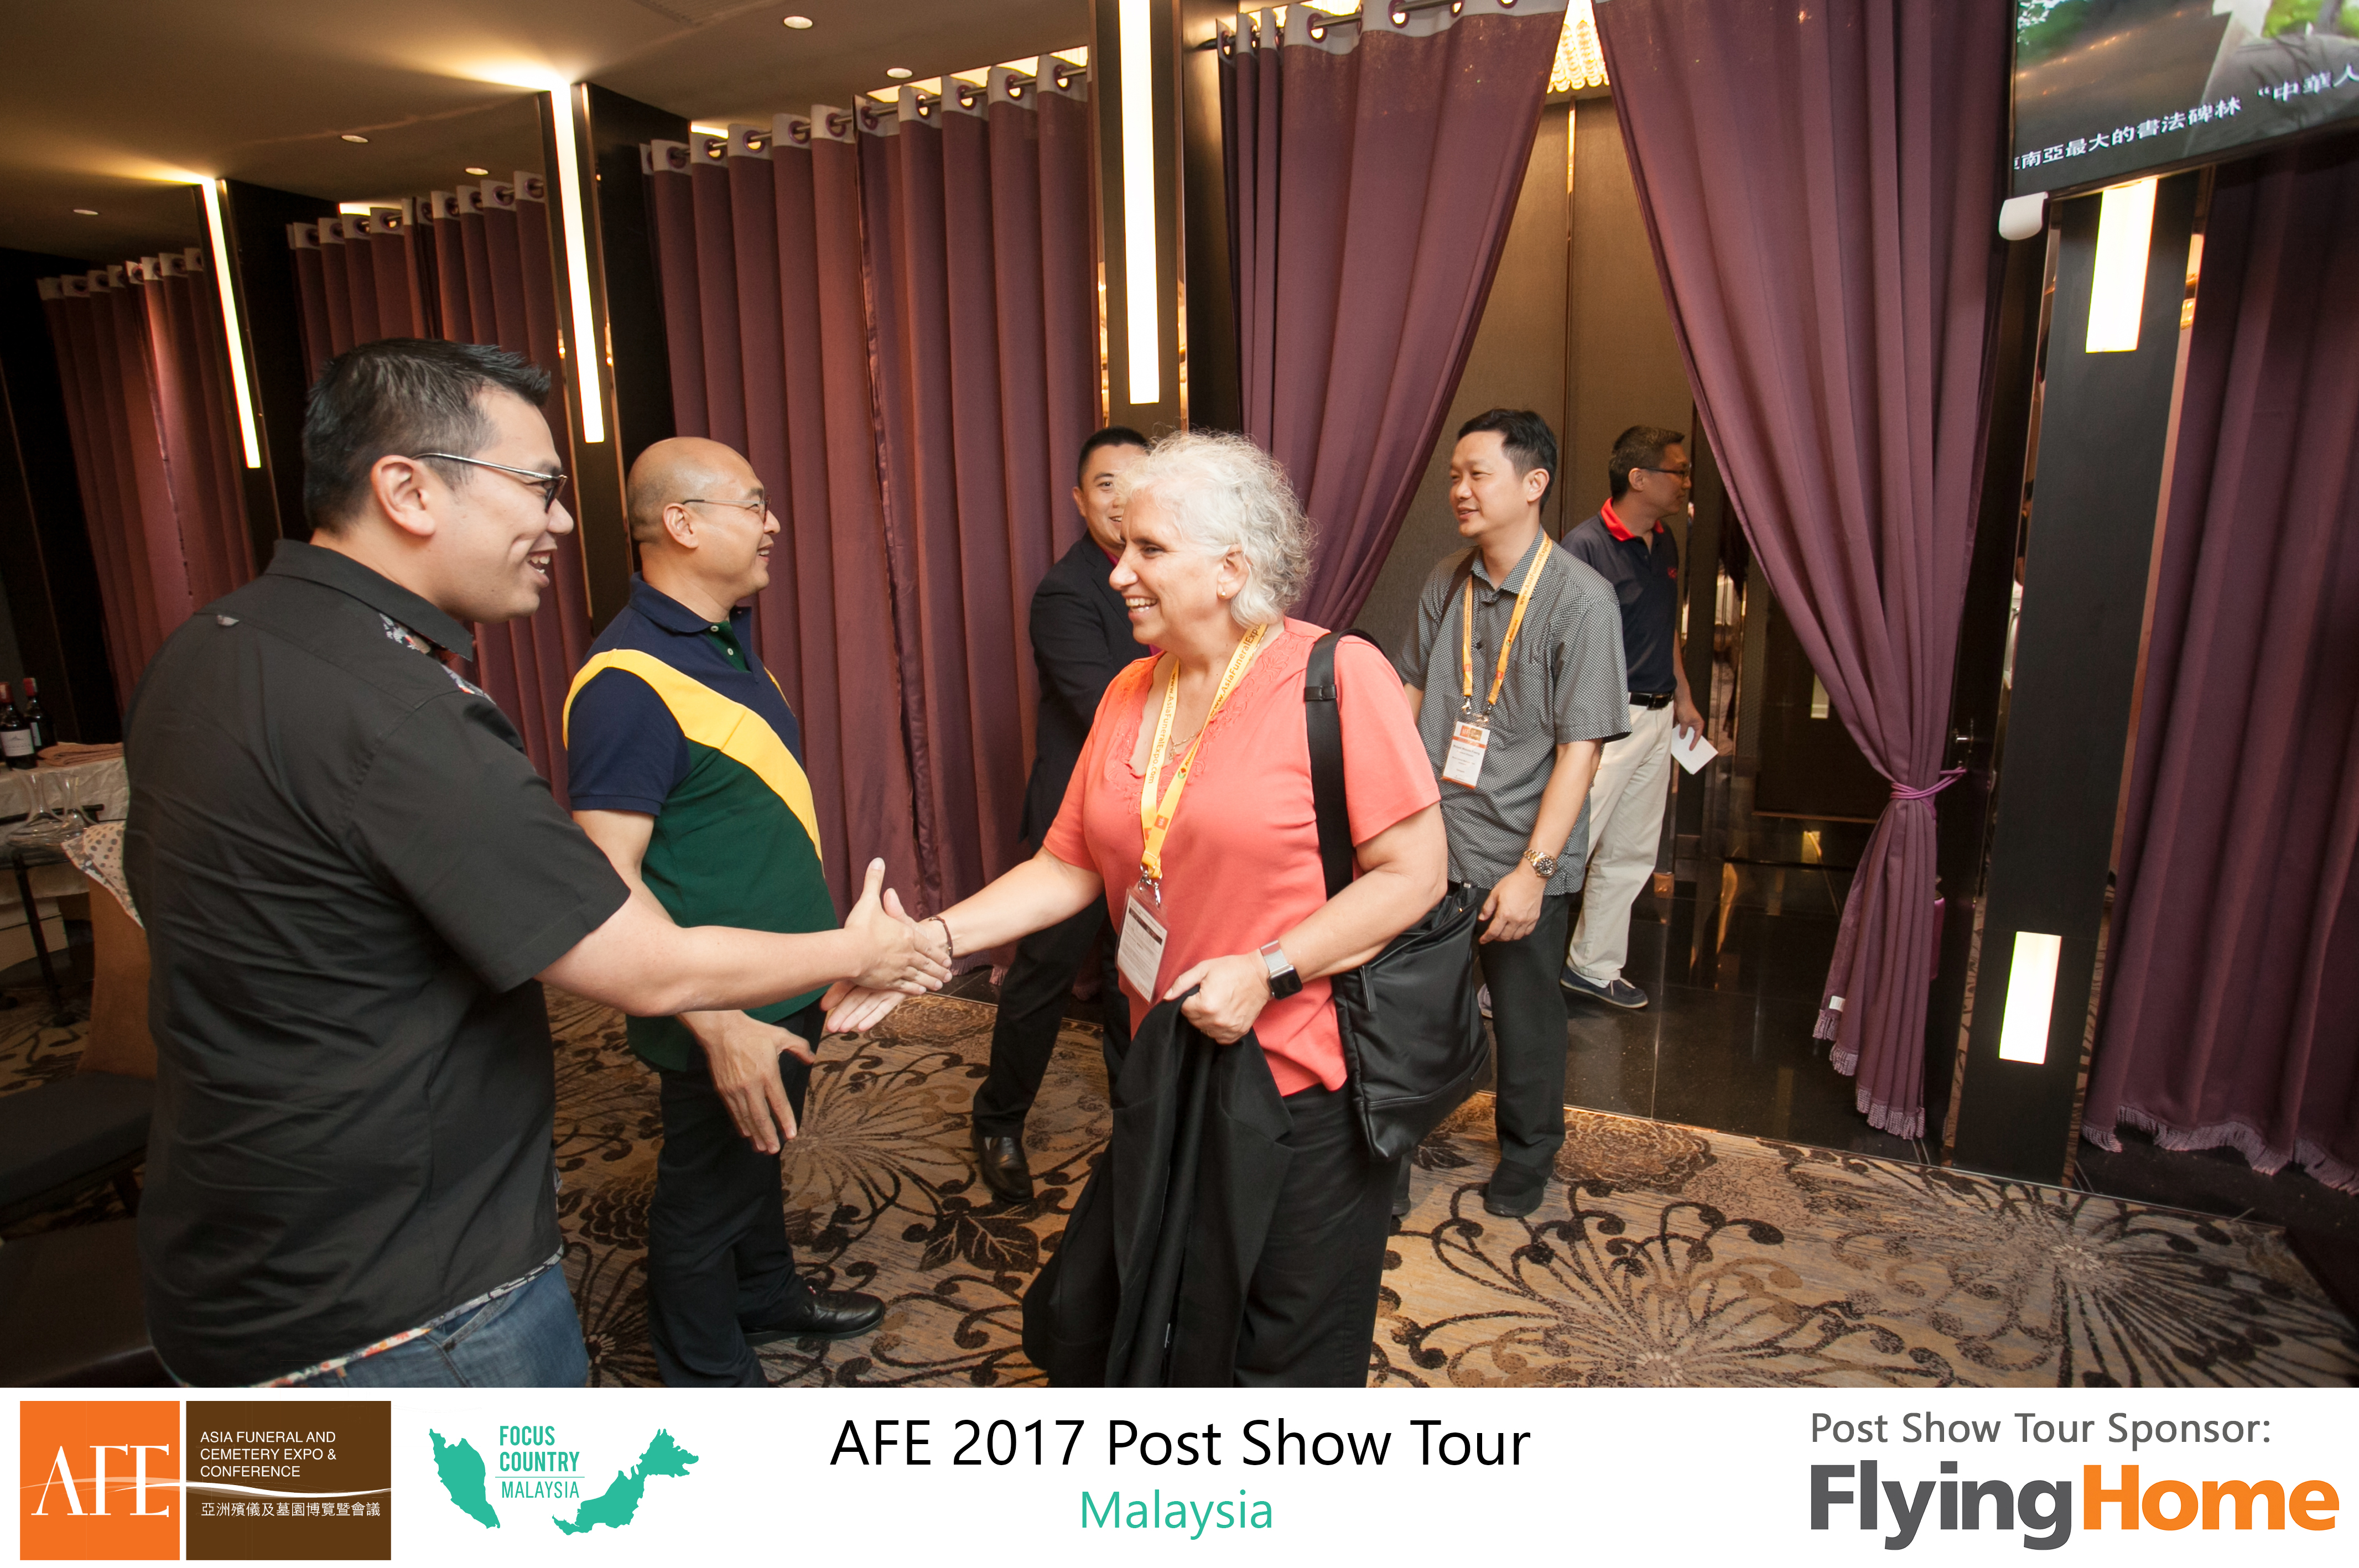 AFE Post Show Tour 2017 Day 2 - 27